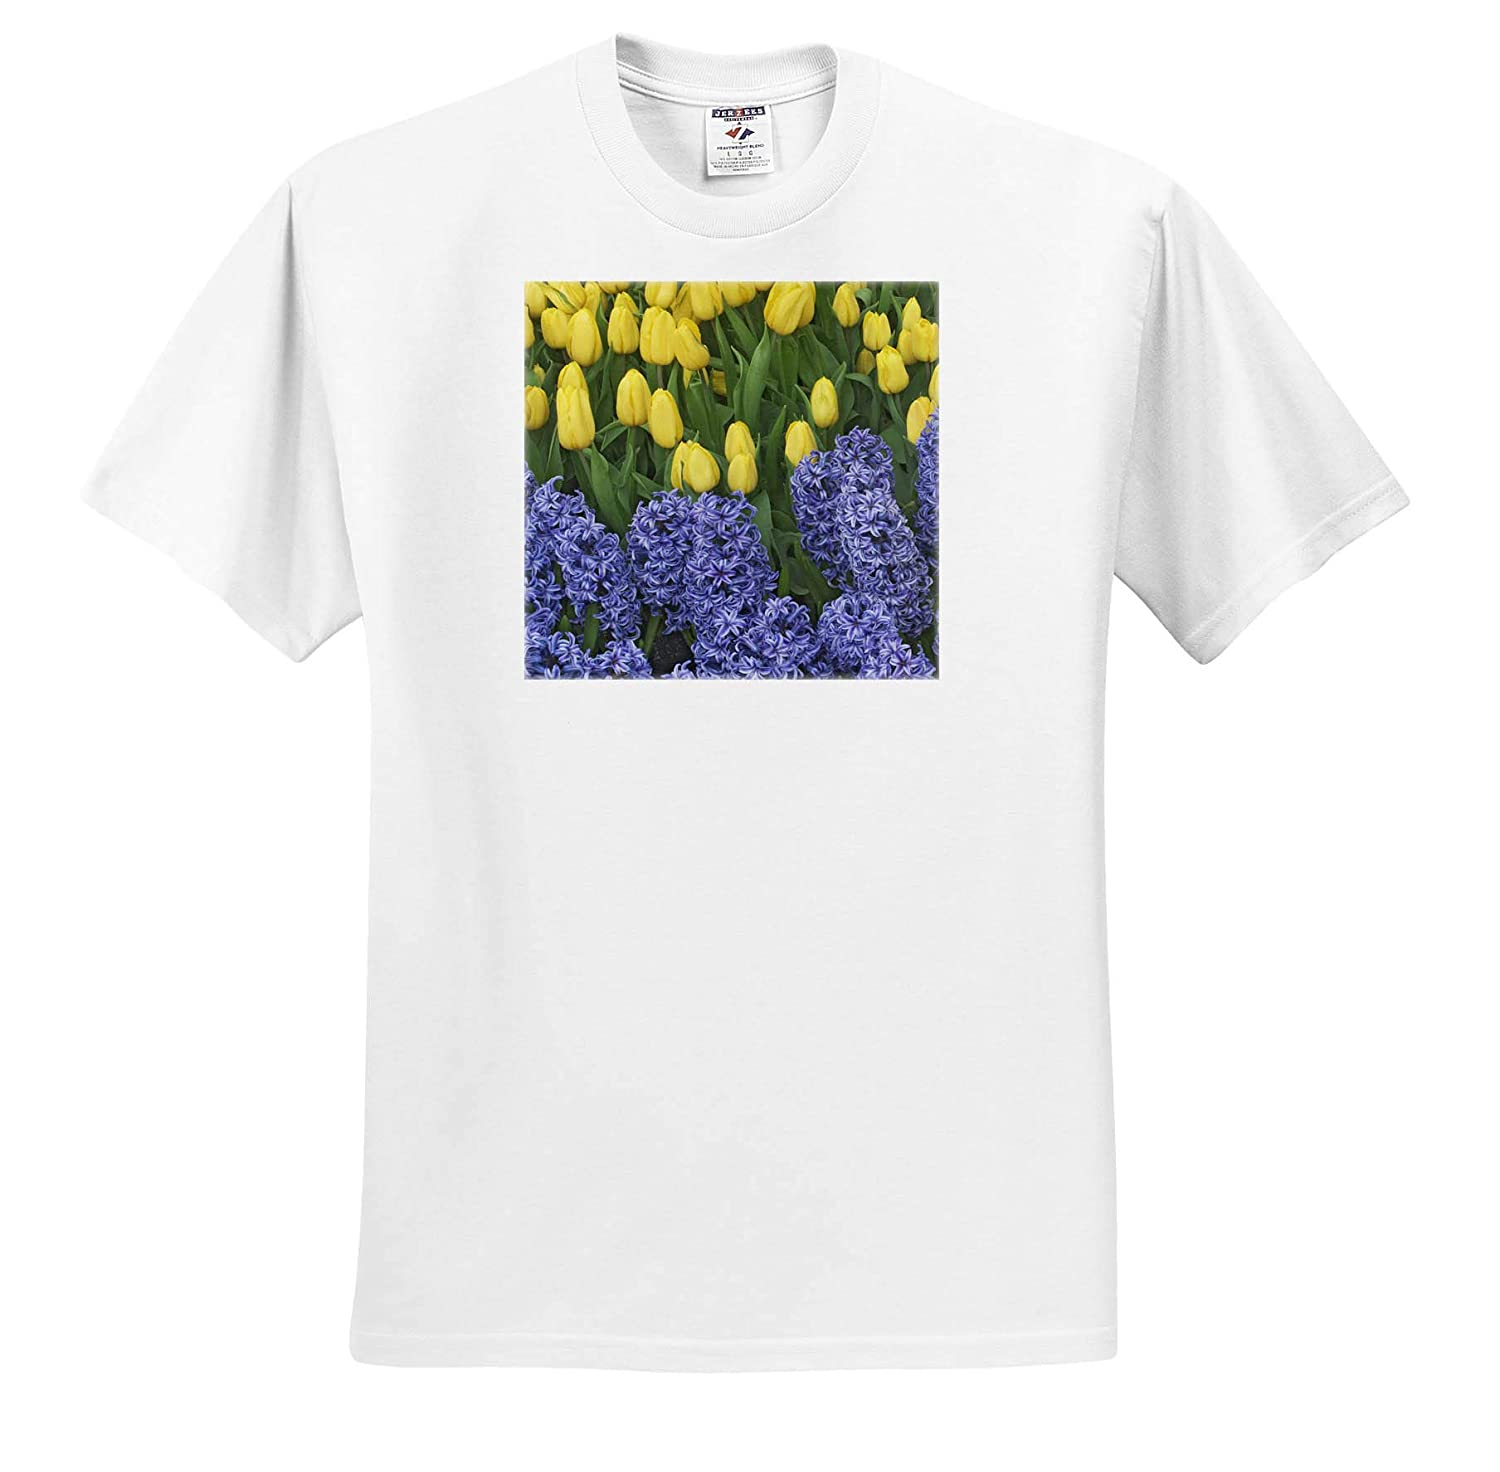 Hyacinth and Yellow Tulips in Garden 3dRose Danita Delimont - Adult T-Shirt XL Flowers ts/_314930